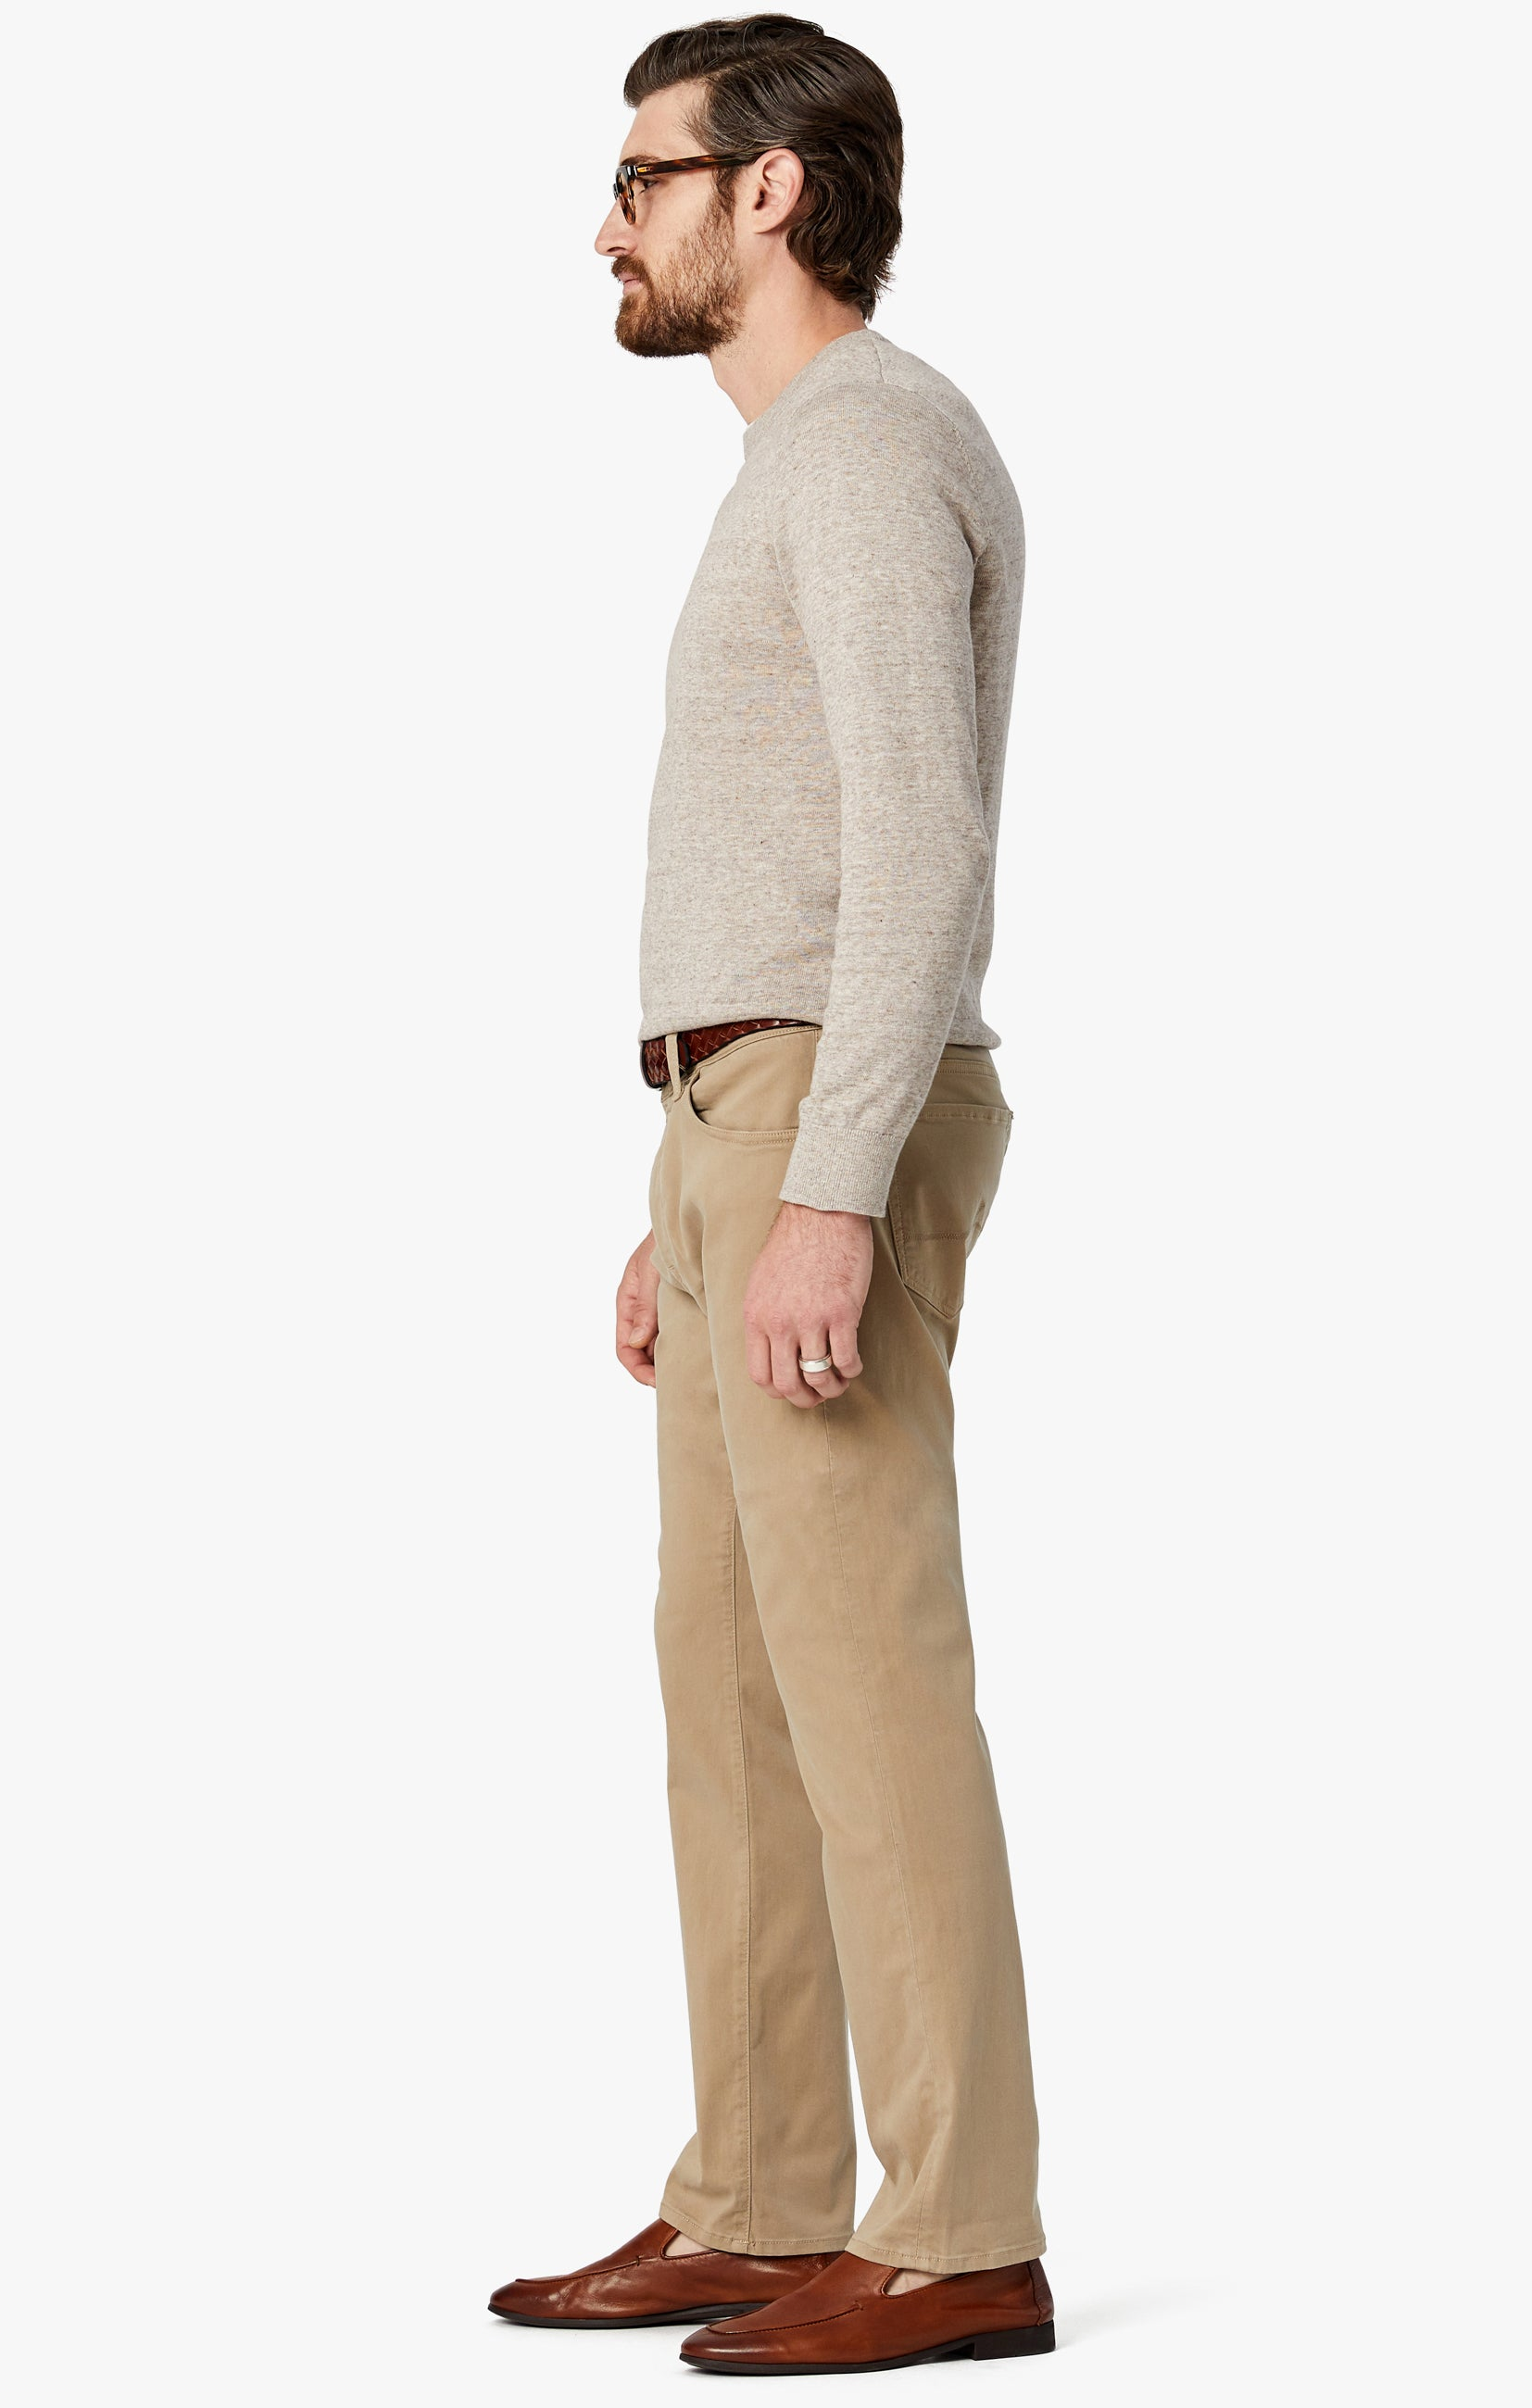 Courage Straight Leg Pants in Sand Twill Image 5